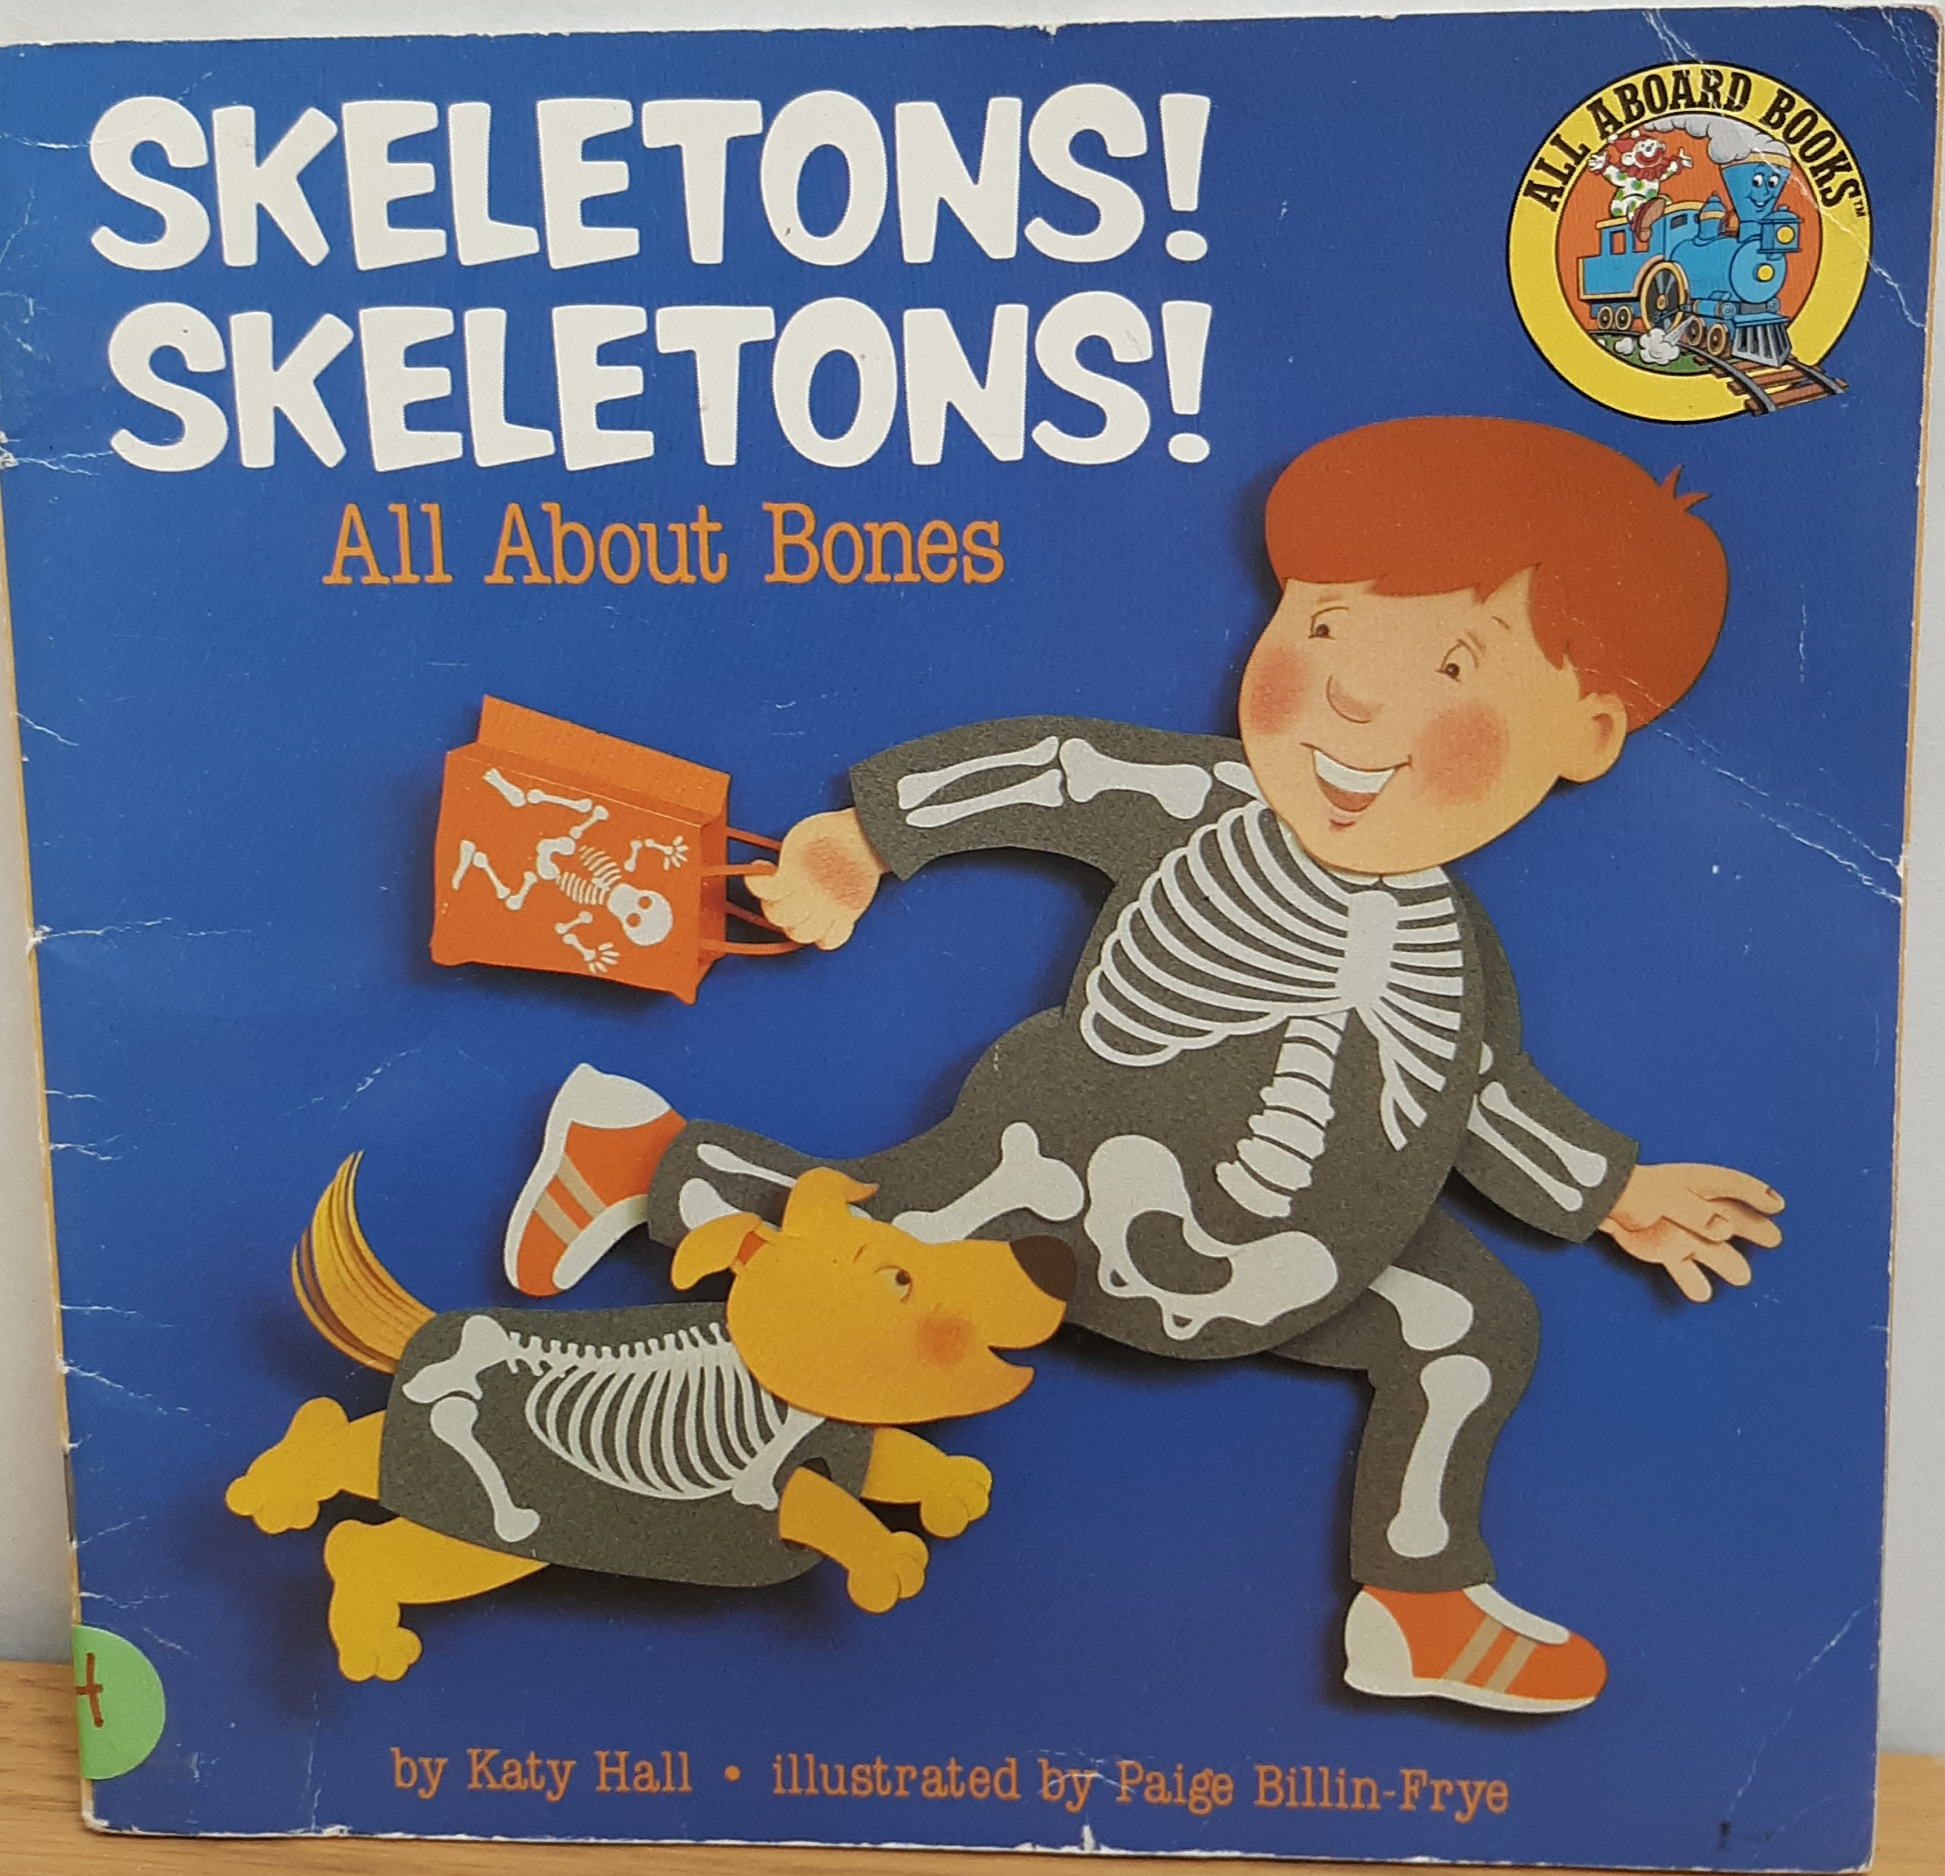 https://0201.nccdn.net/1_2/000/000/0ed/def/all-about-bones.png